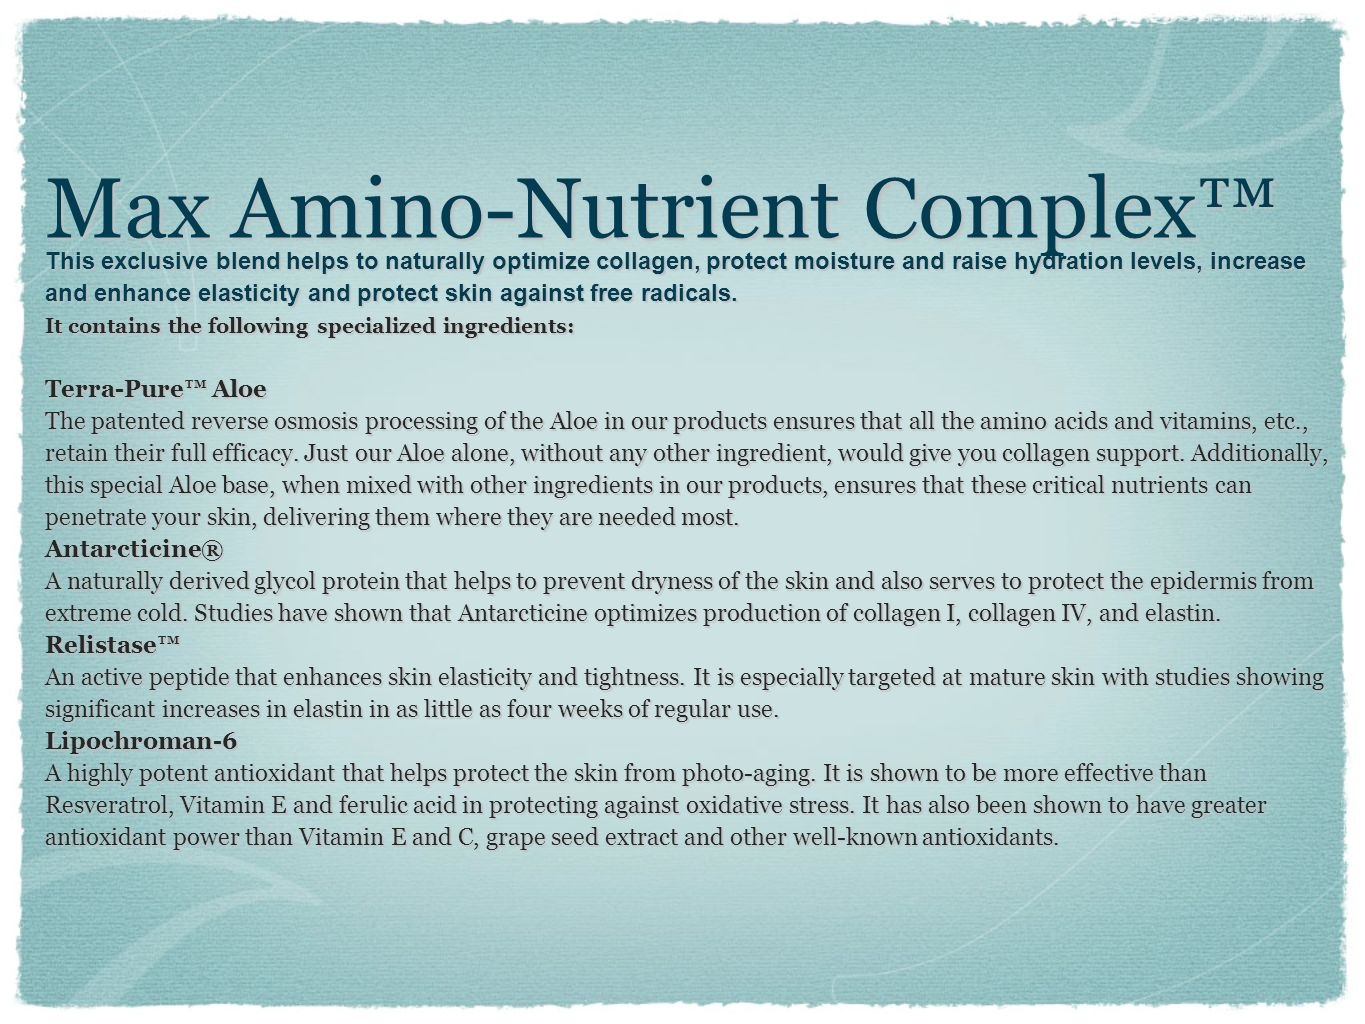 Max Amino-Nutrient Complex This exclusive blend helps to naturally optimize collagen, protect moisture and raise hydration levels, increase and enhanc